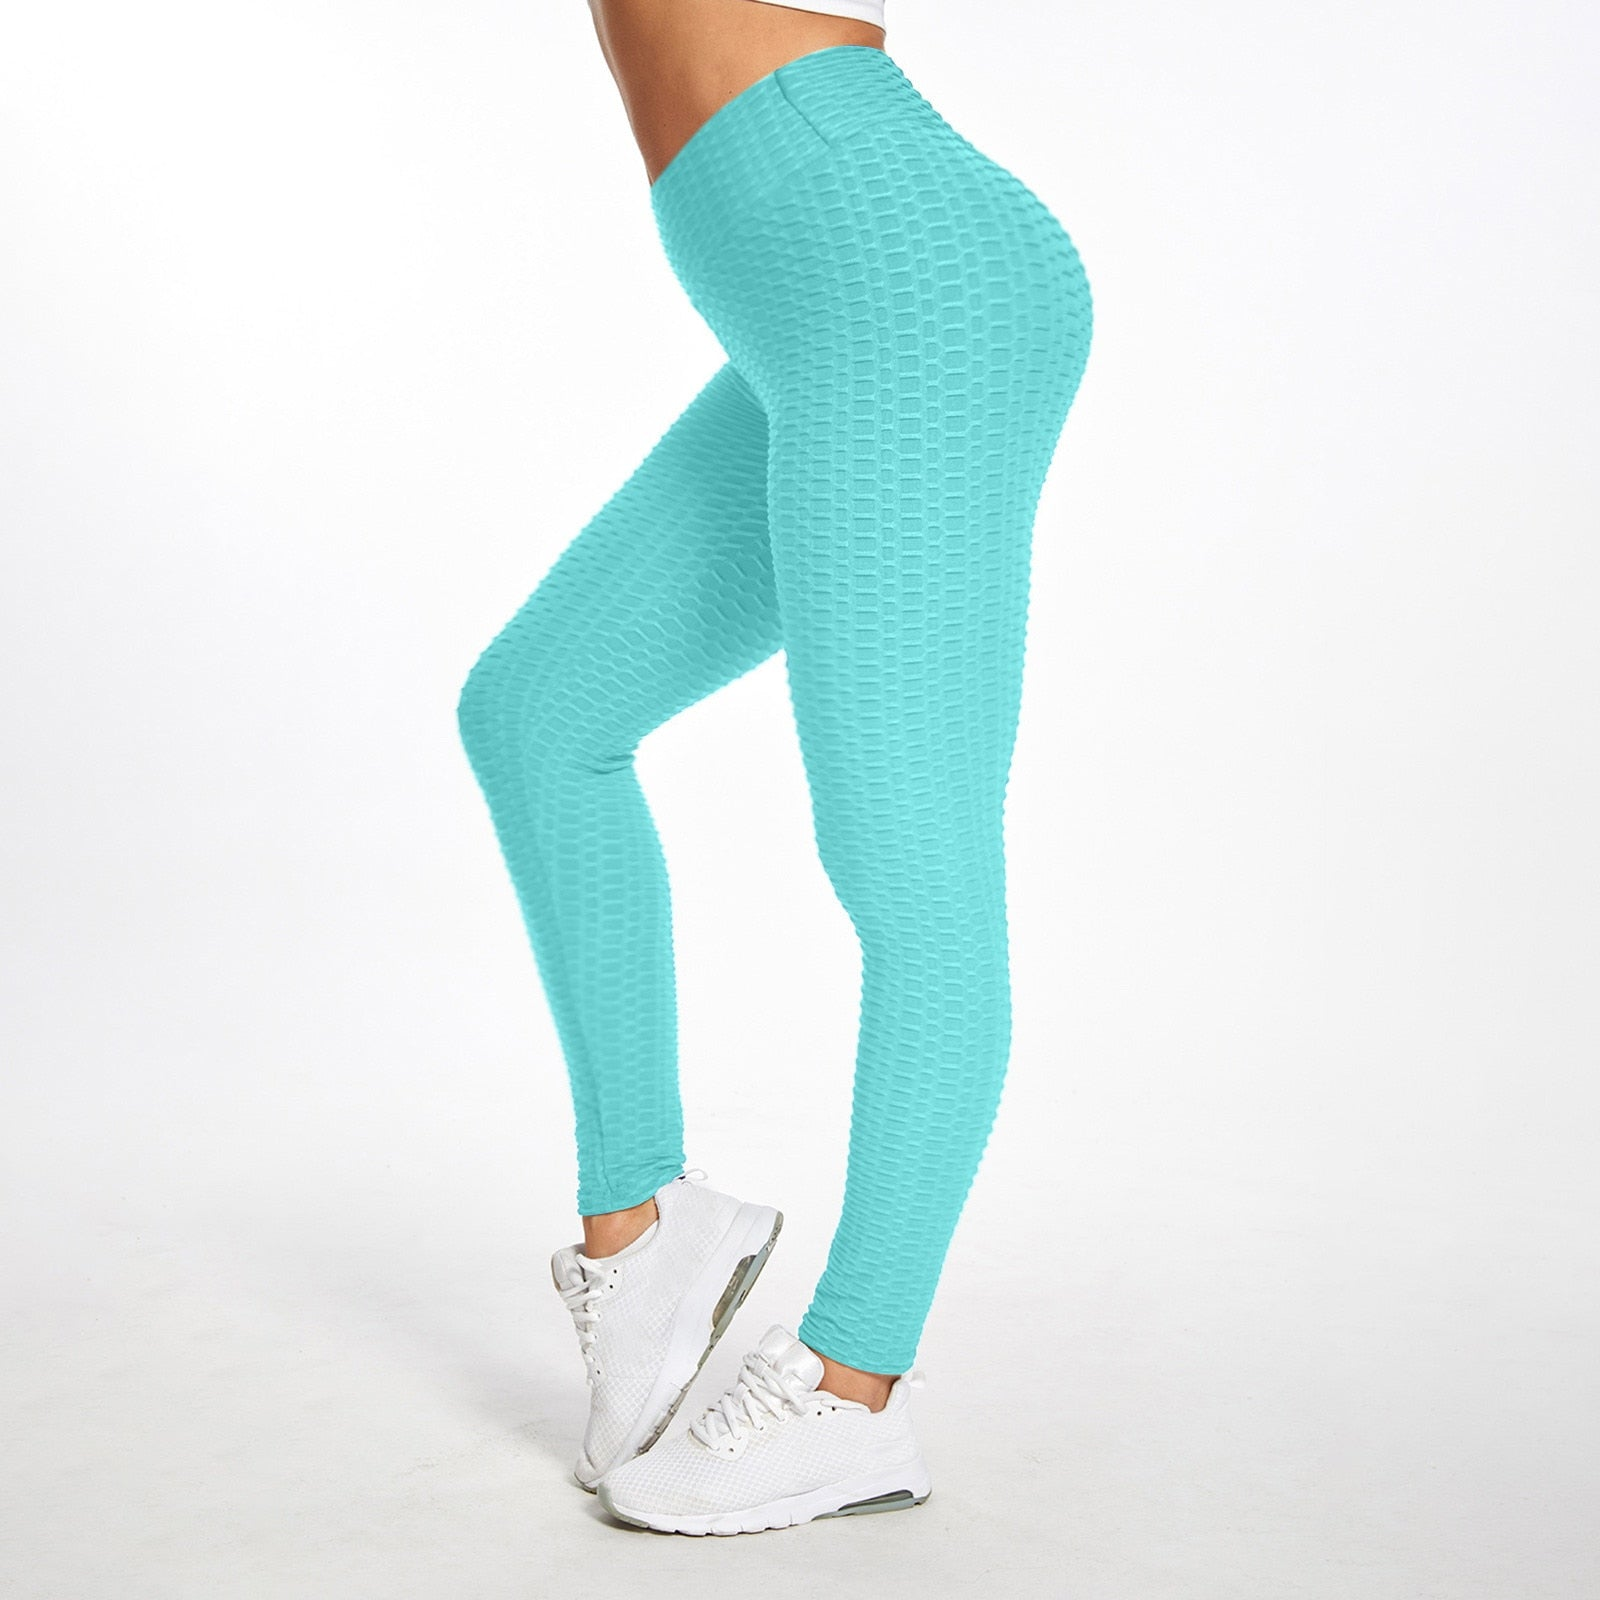 Put on these awesome High Waist Leggings and feel great! They feature a solid pattern, gathered mesh, high elastic waistline, a booty lift, are seamless and ankle length. Choose from 9 fun colors. Delivery 4-13 days. New Arrival. From our Utterly Unique Boutique. Description: Material: Spandex, Polyester, Length: Ankle, Pattern: Solid, Waistline: High, Elastic, Fashion Element: Booty Lift, Gathered Mesh, Seamless.